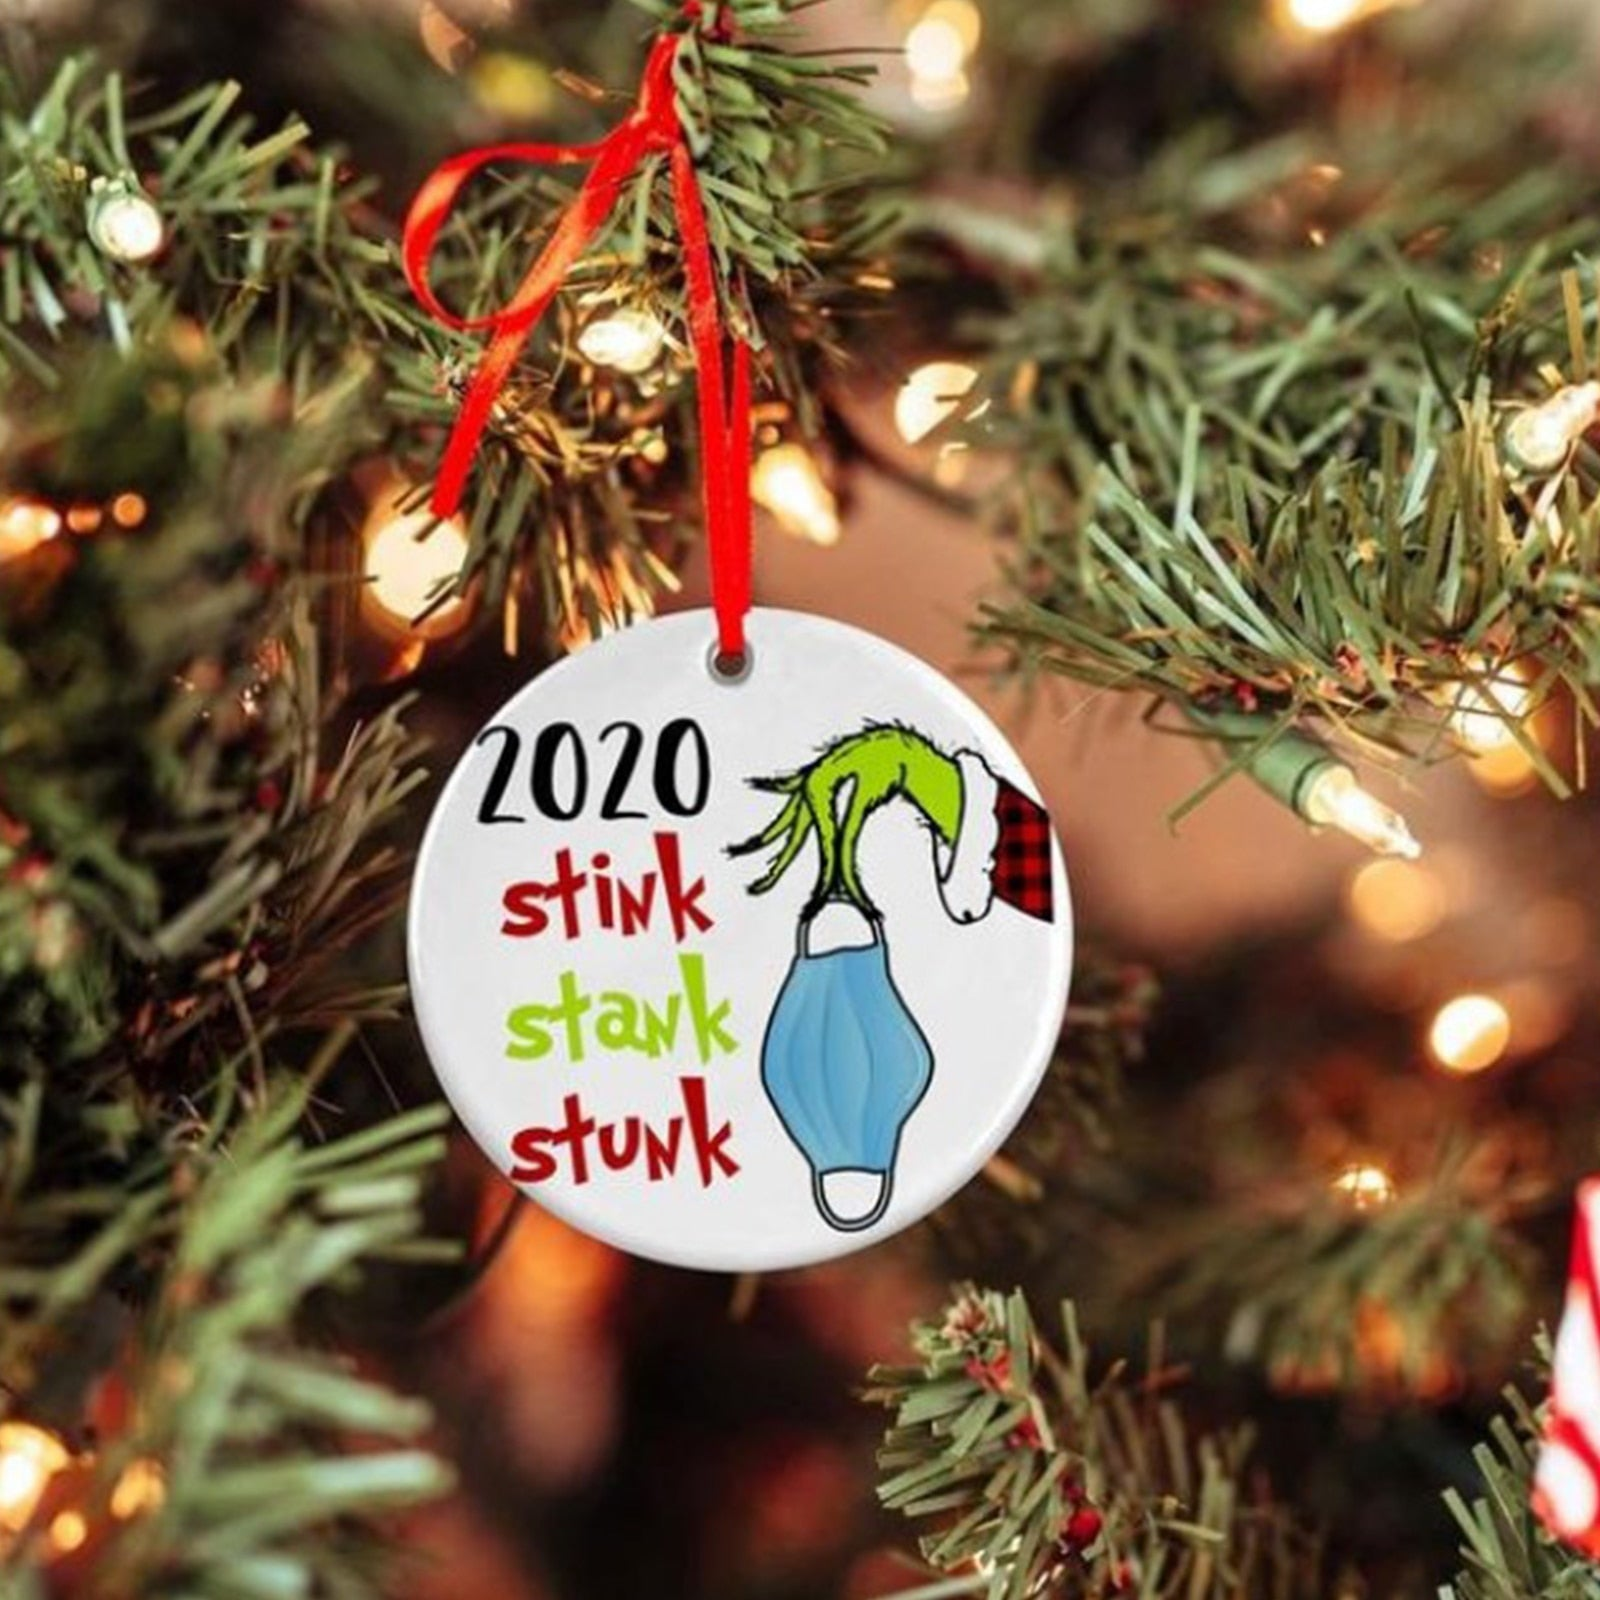 2020 Stink Stank Stunk Grinch Mask Ornament